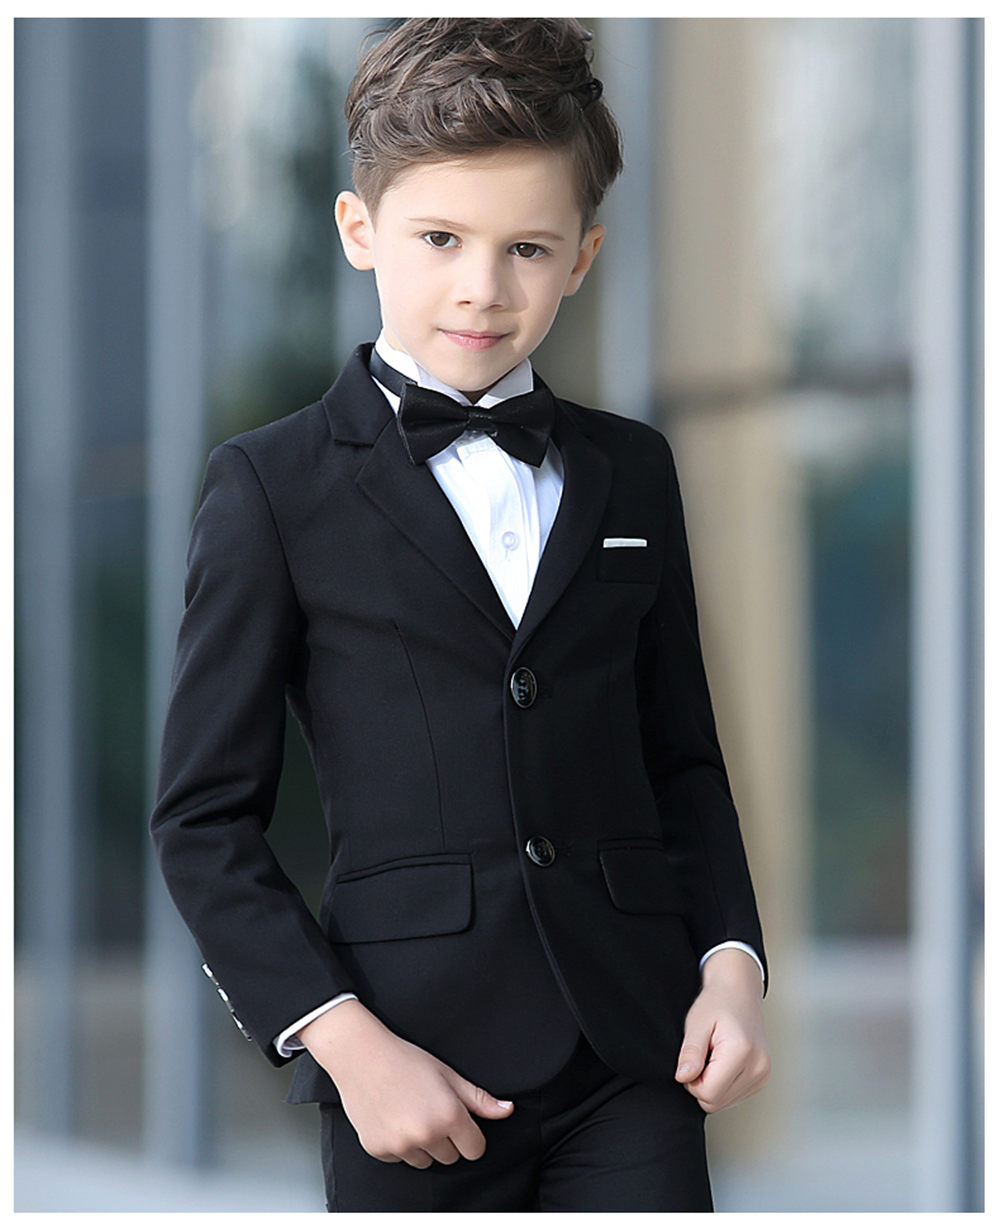 Boys Suits For Weddings Kids Prom Suits Black Wedding Suits Kids Blazers Boys Clothing Set Boy Formal Classic Custom Cute Suits